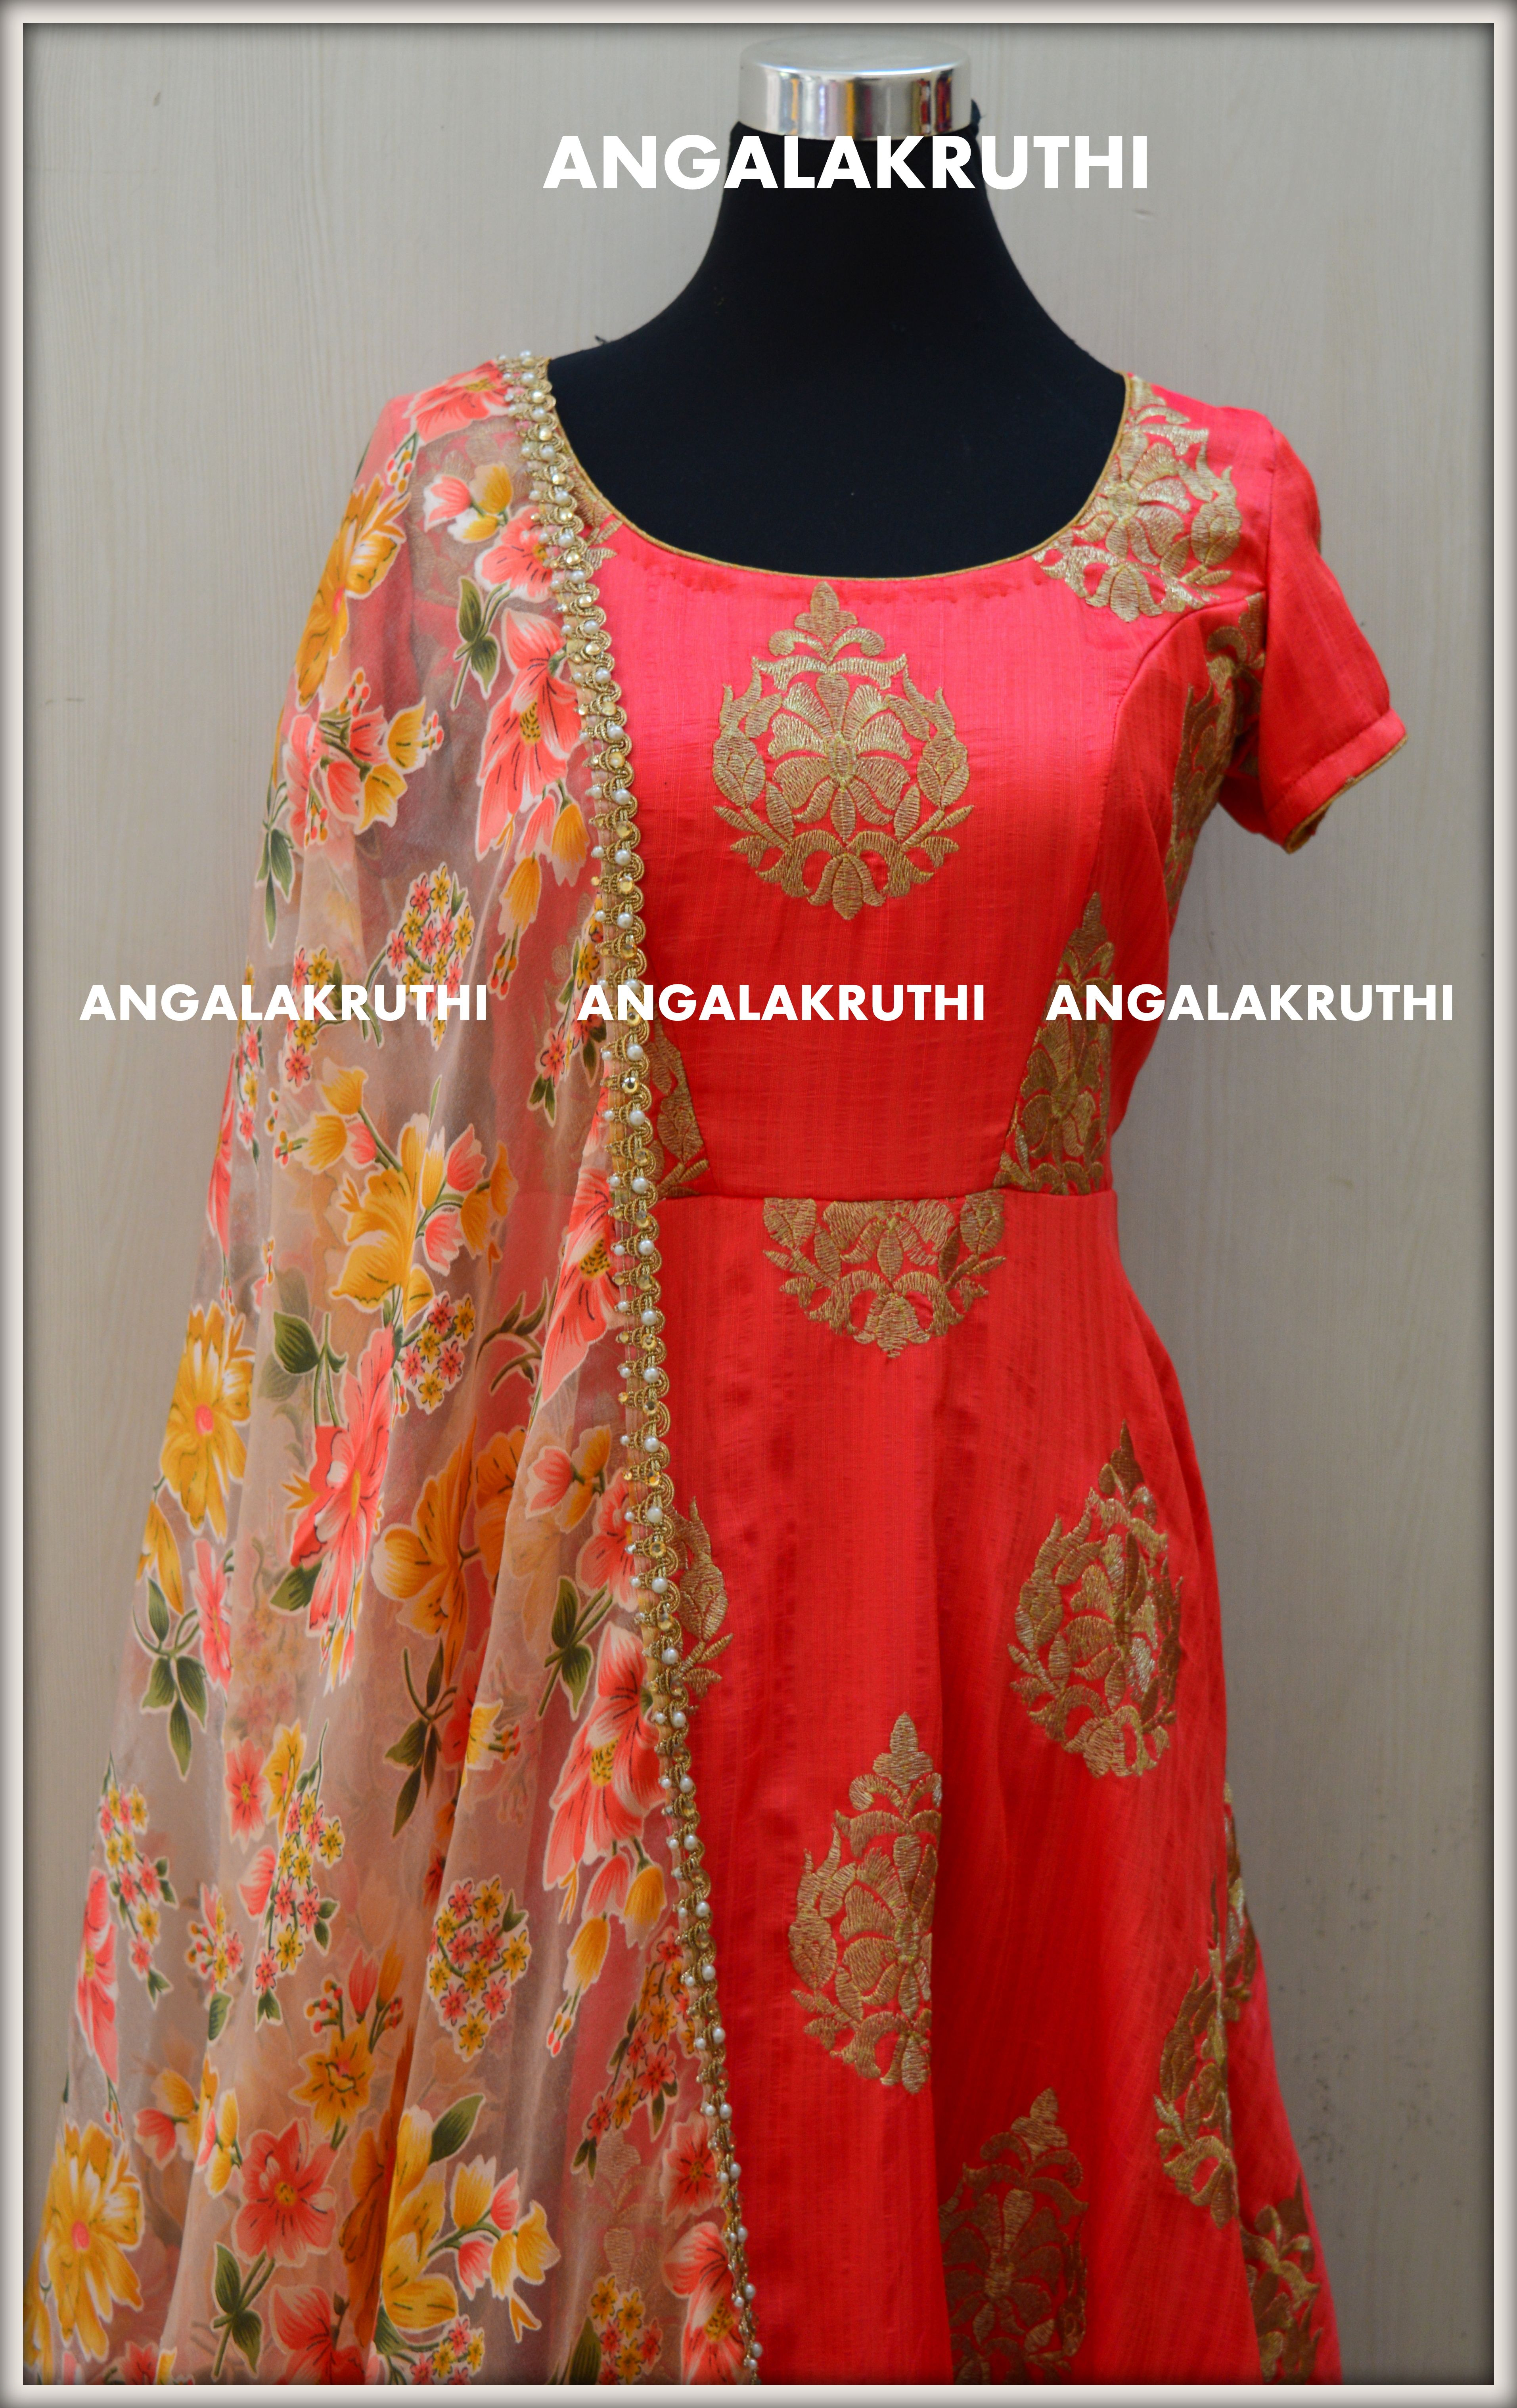 5e7636a5173 #Designer Anarkali by Angalakruti_Bangalore boutique #Angalakruthi-Ladies  and kids designer boutique in Bangalore Custom designs with online order  placement ...